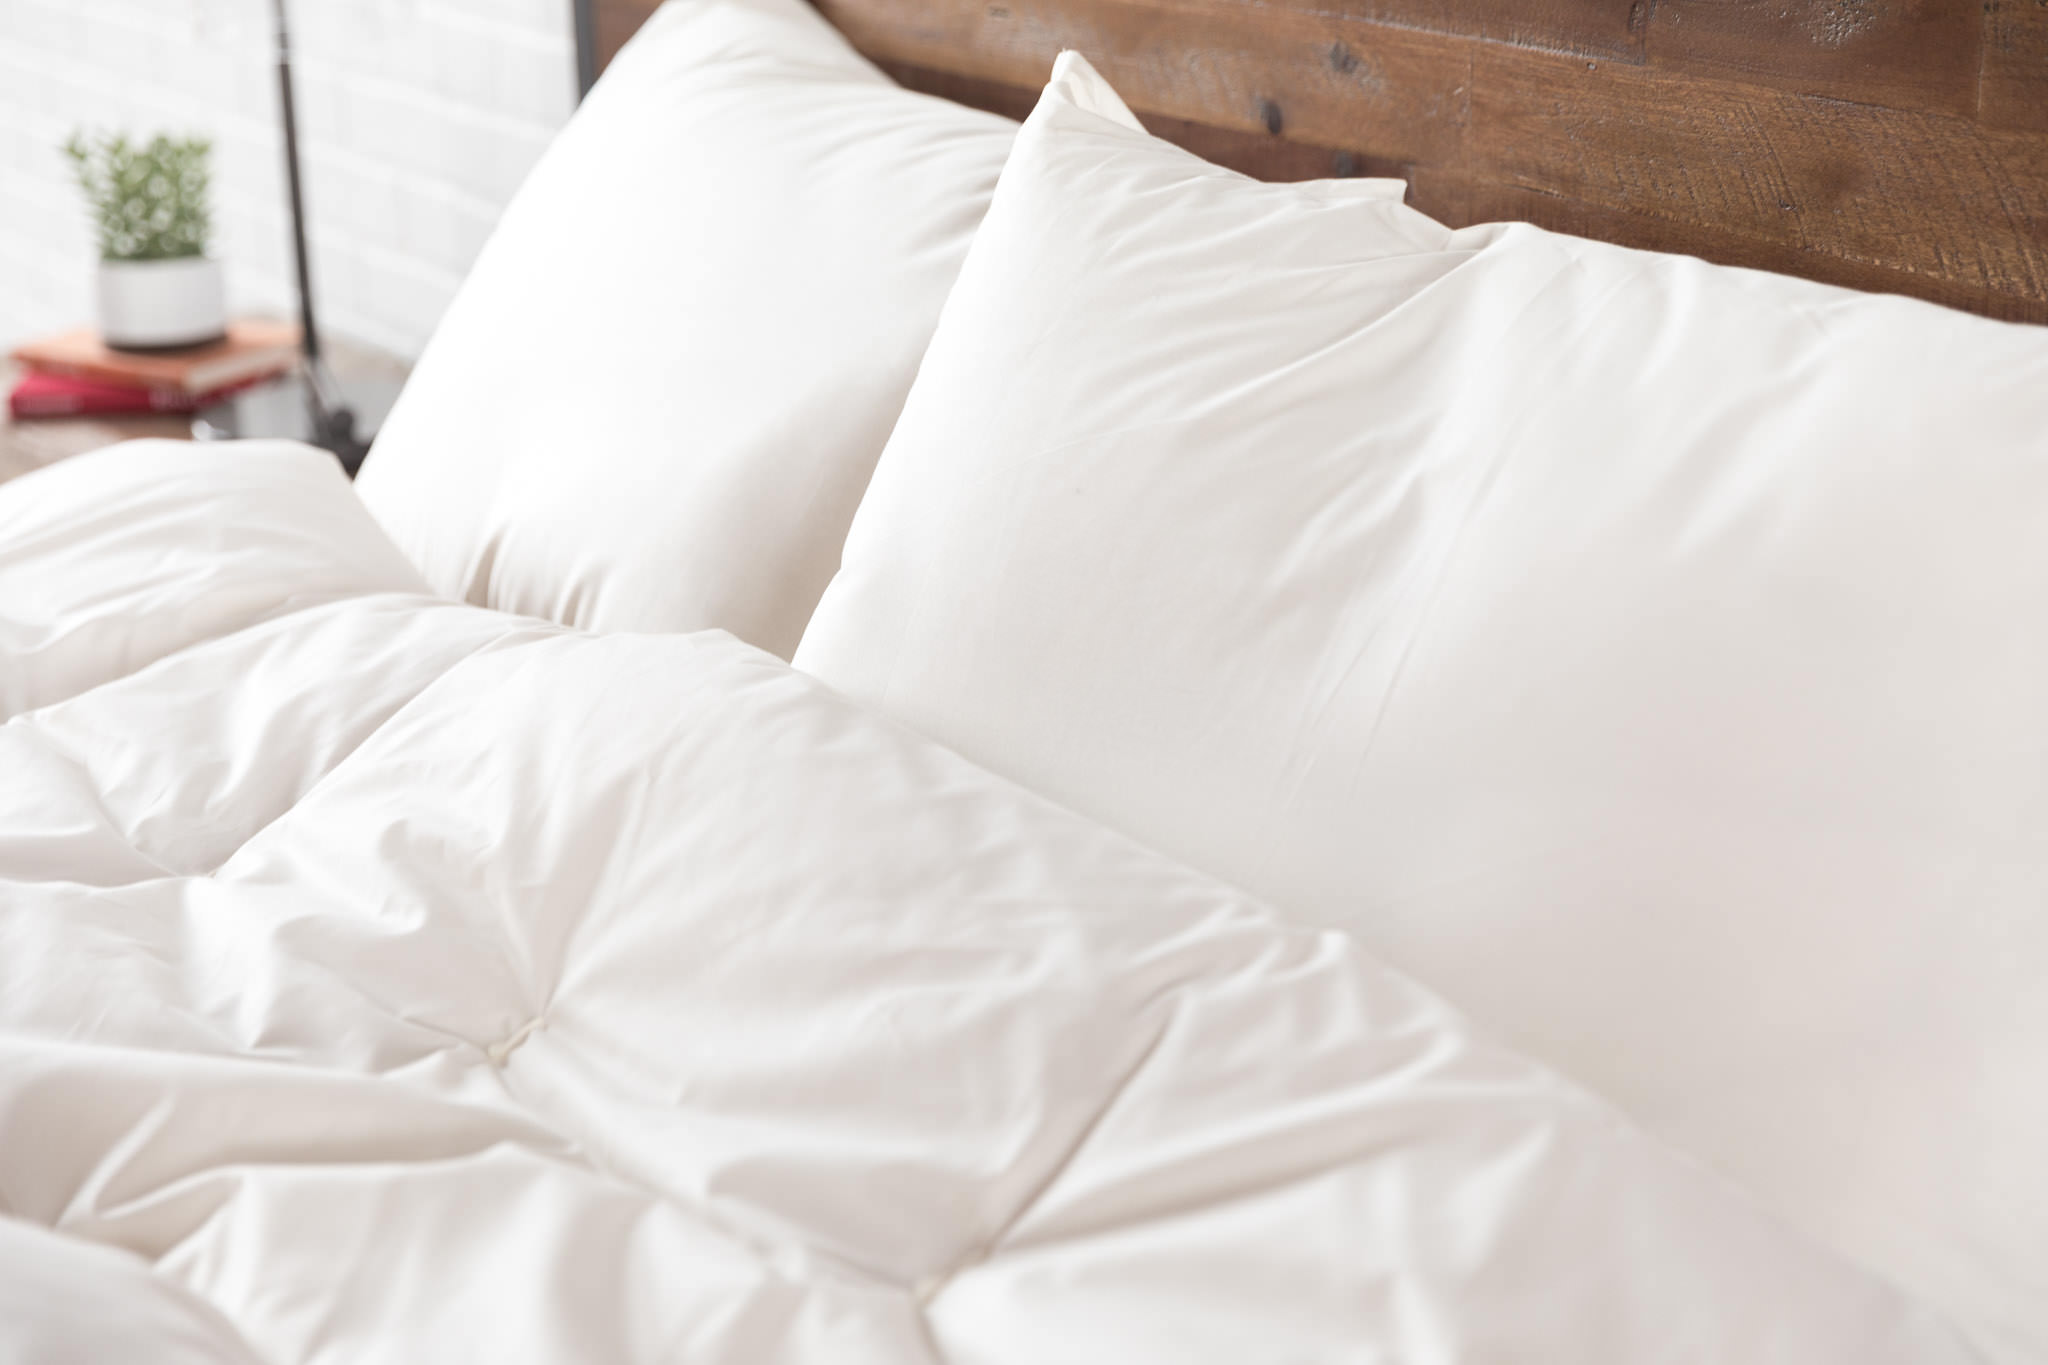 Wool Comforter and Wool Pillows on Bed